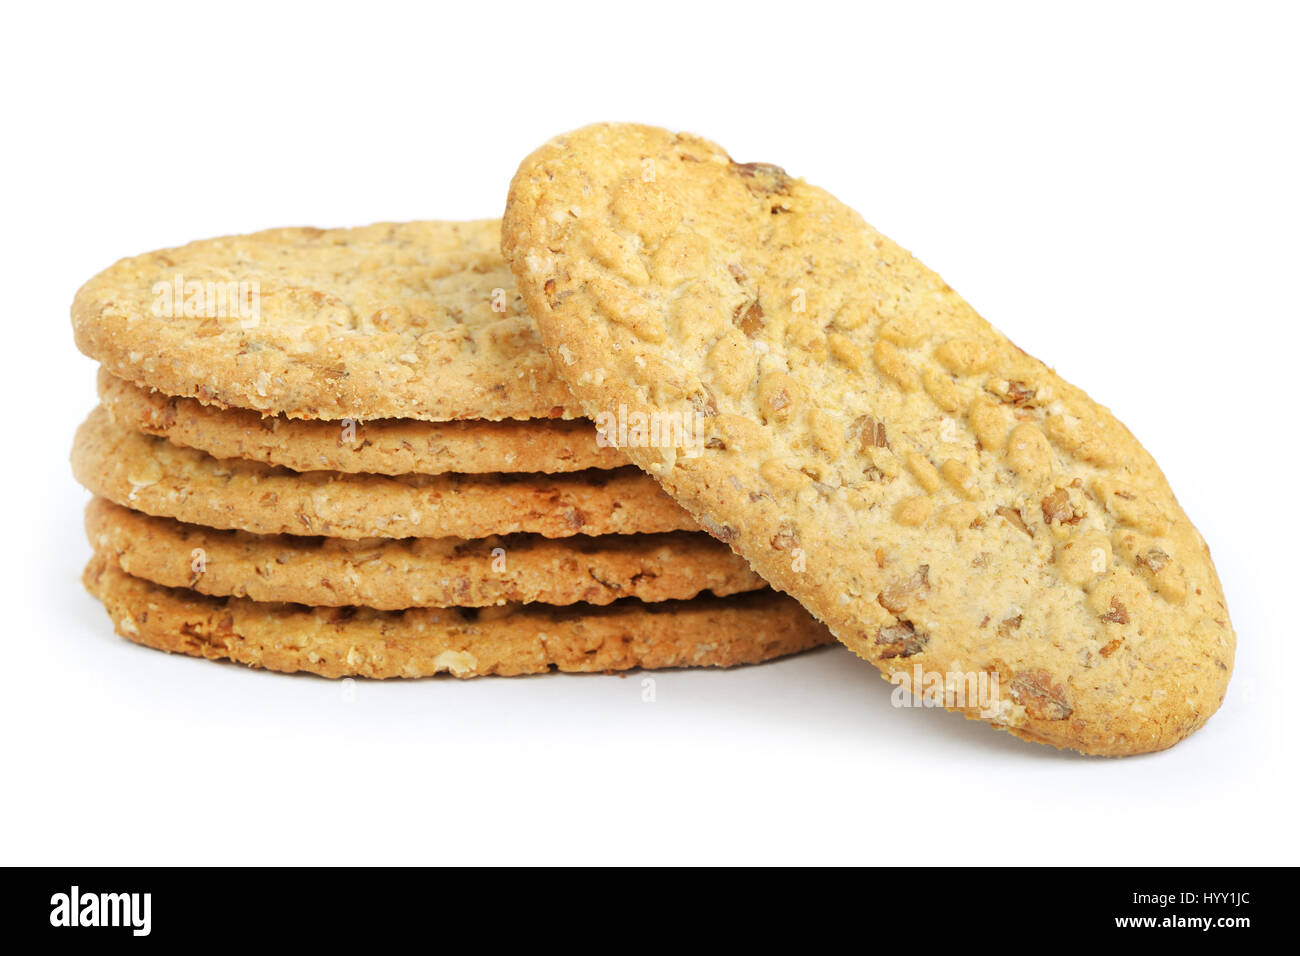 Oval-shaped cookies isolated on white background - Stock Image